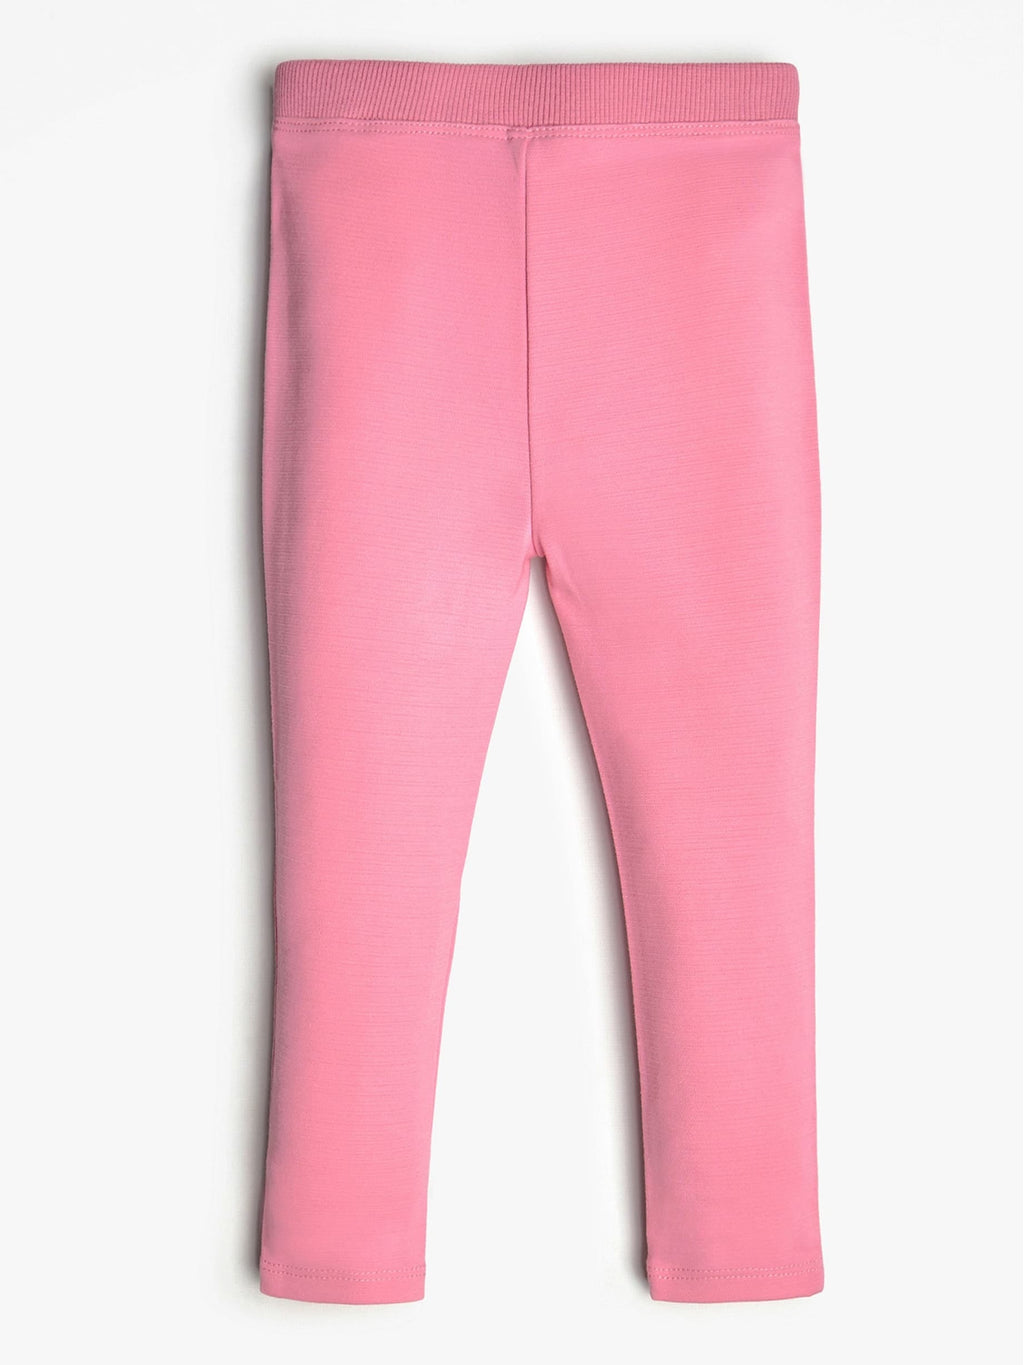 Pink Legging With Logo - MamaSmile